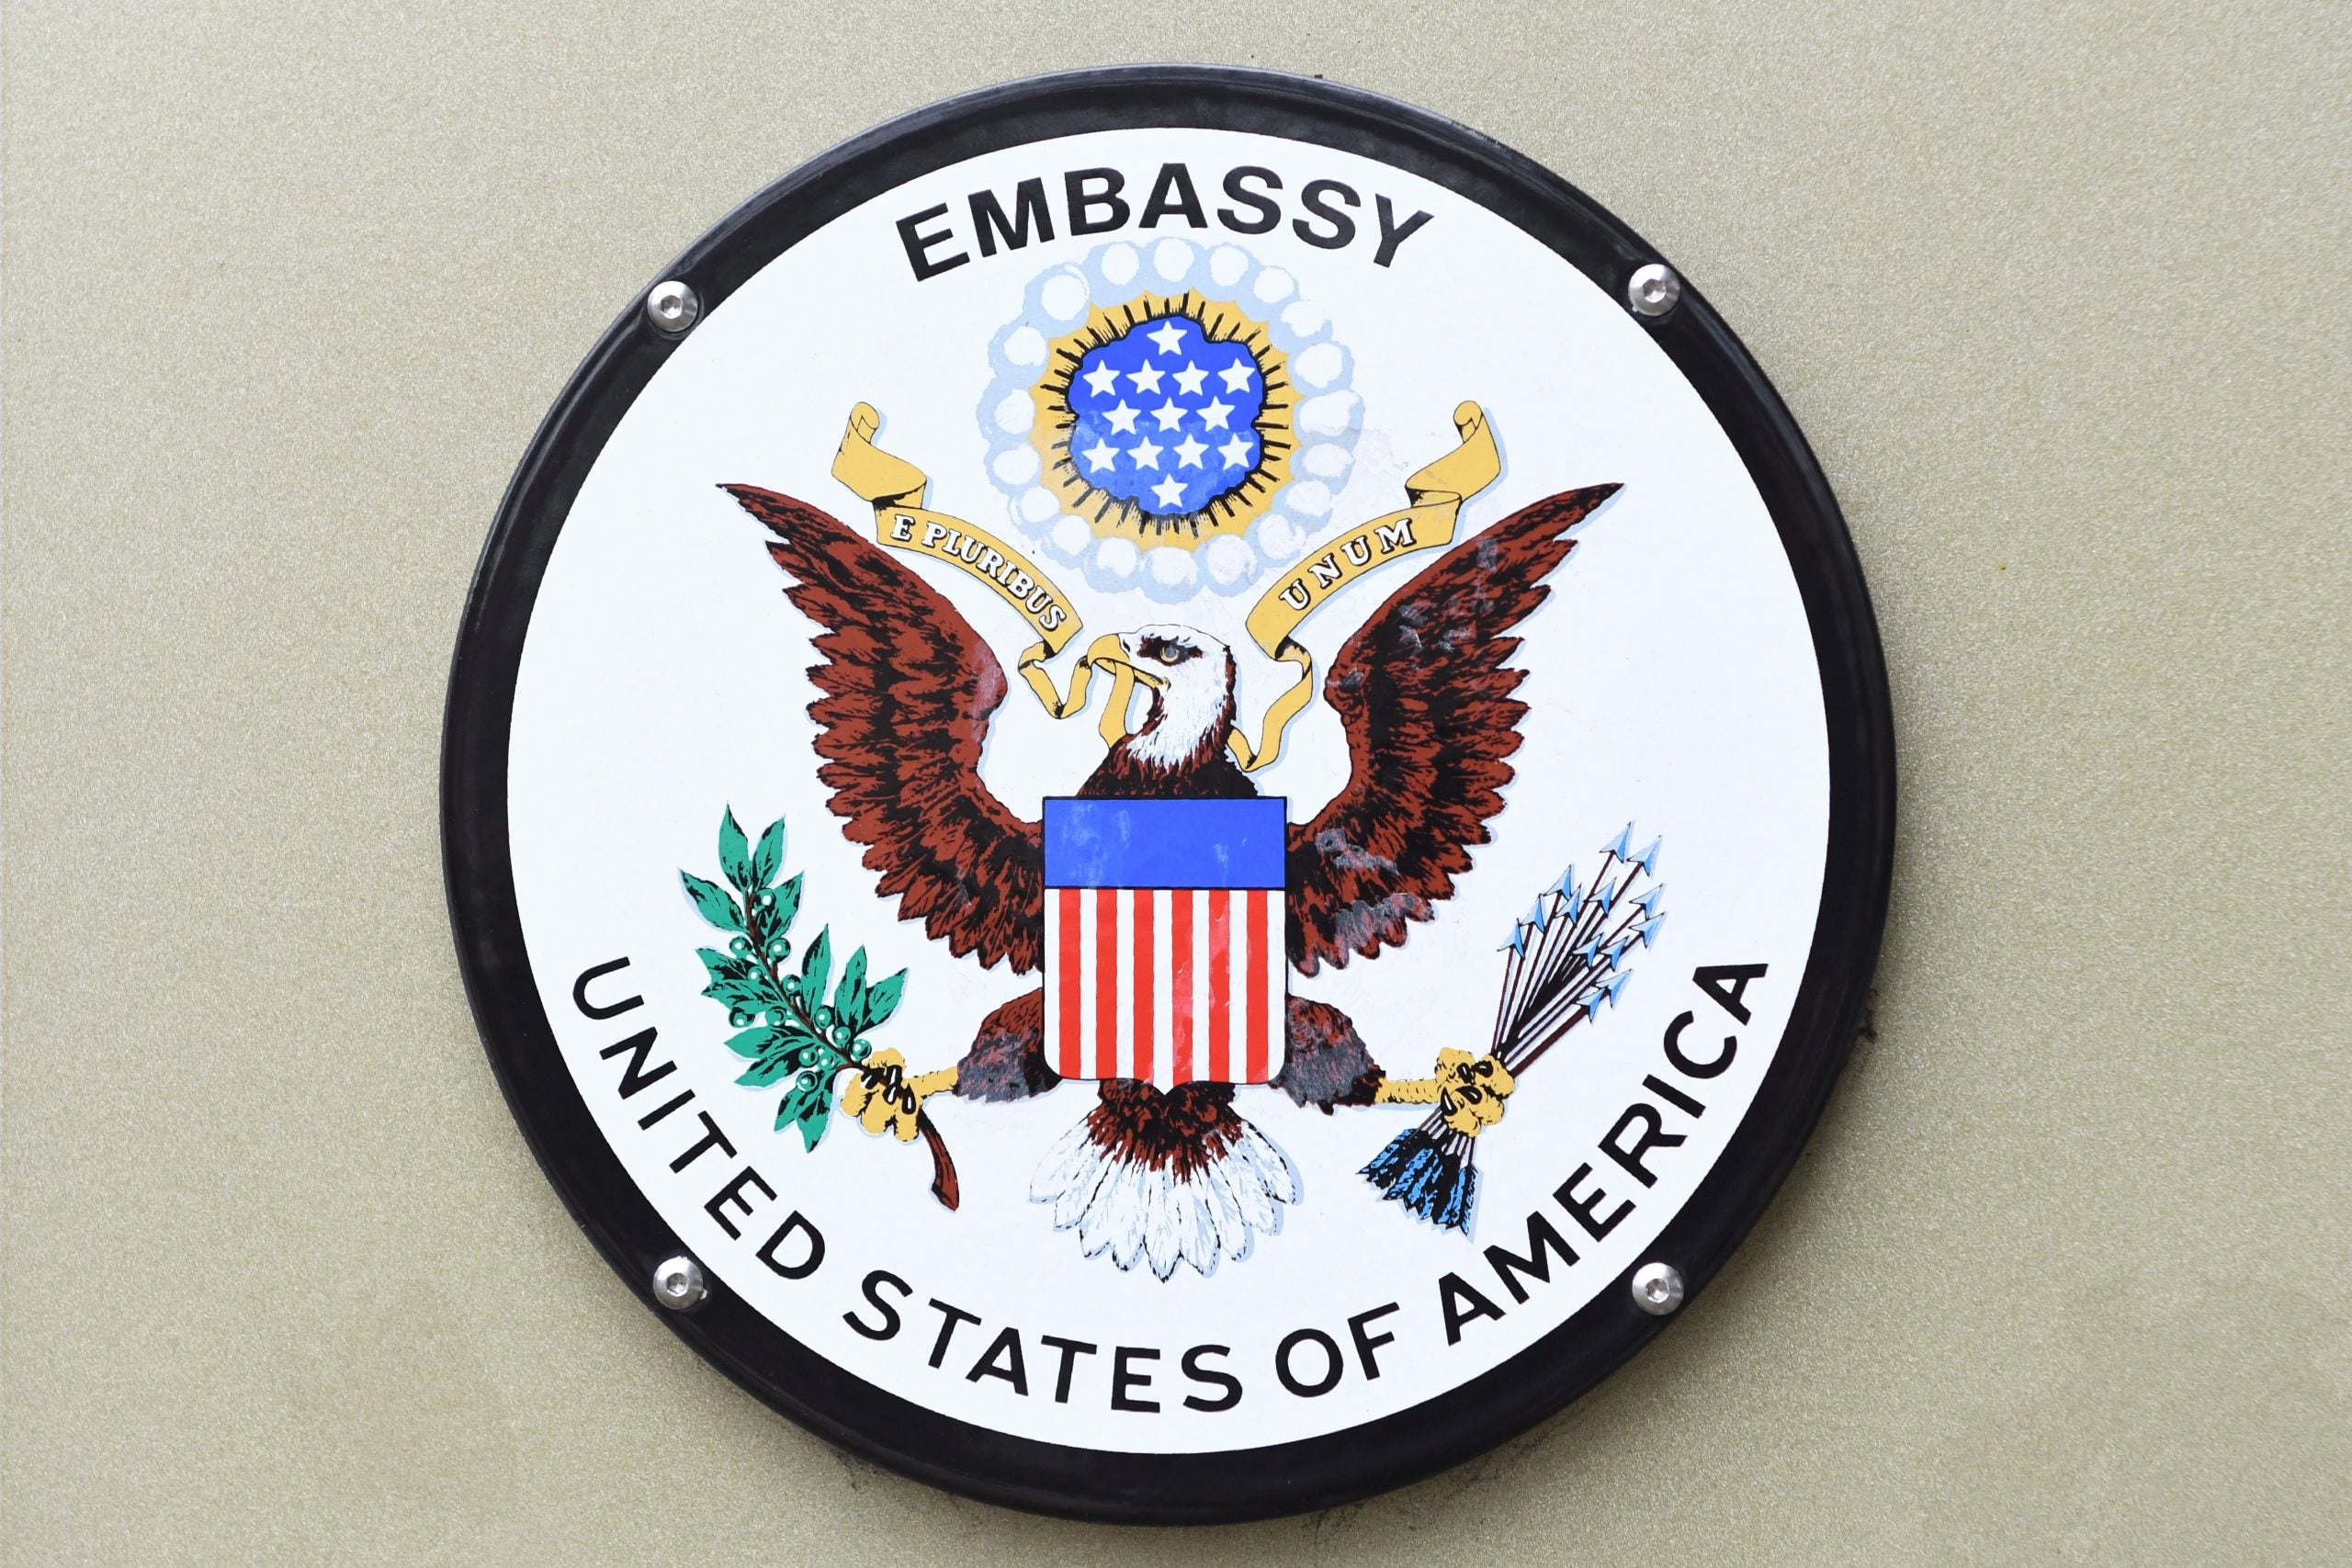 Diplomats – like governments – are too immune from accountability